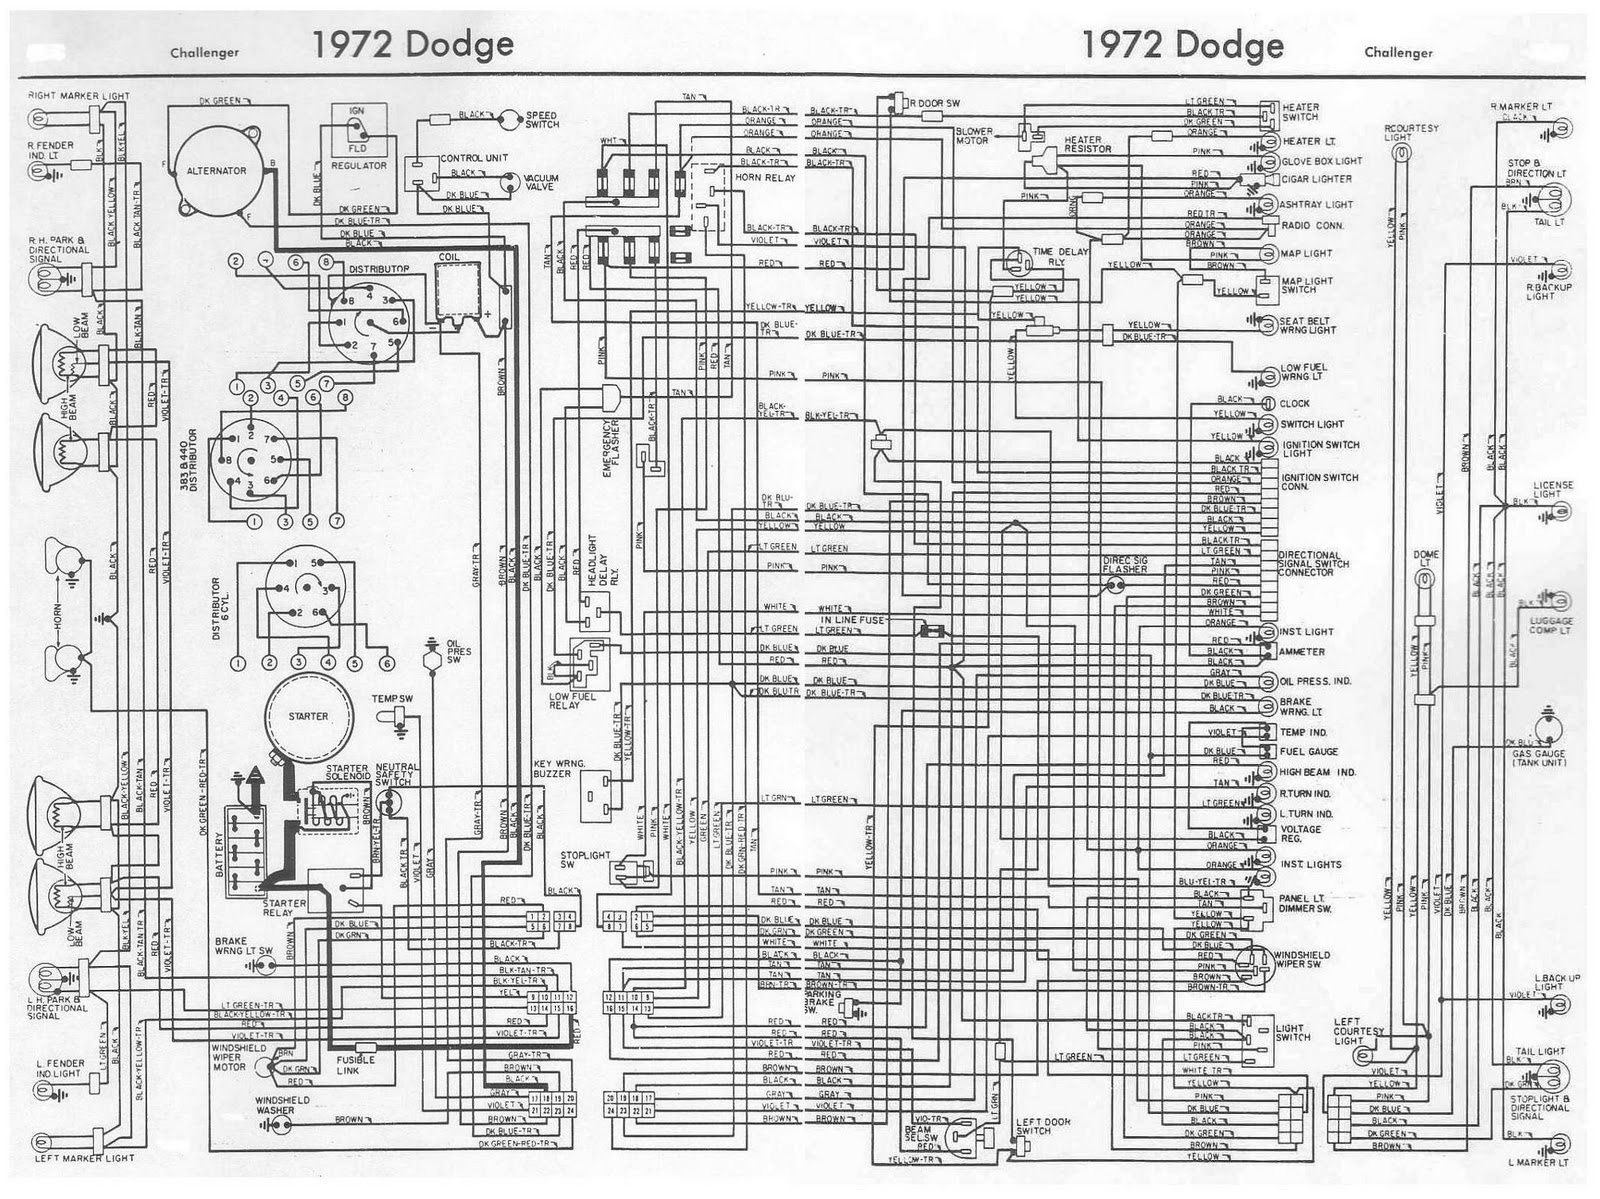 2014 Dodge Wiring Harness Diagram Reinvent Your Ram Radio Challenger Diagrams Detailed Schematics Rh Keyplusrubber Com 2500 Factory